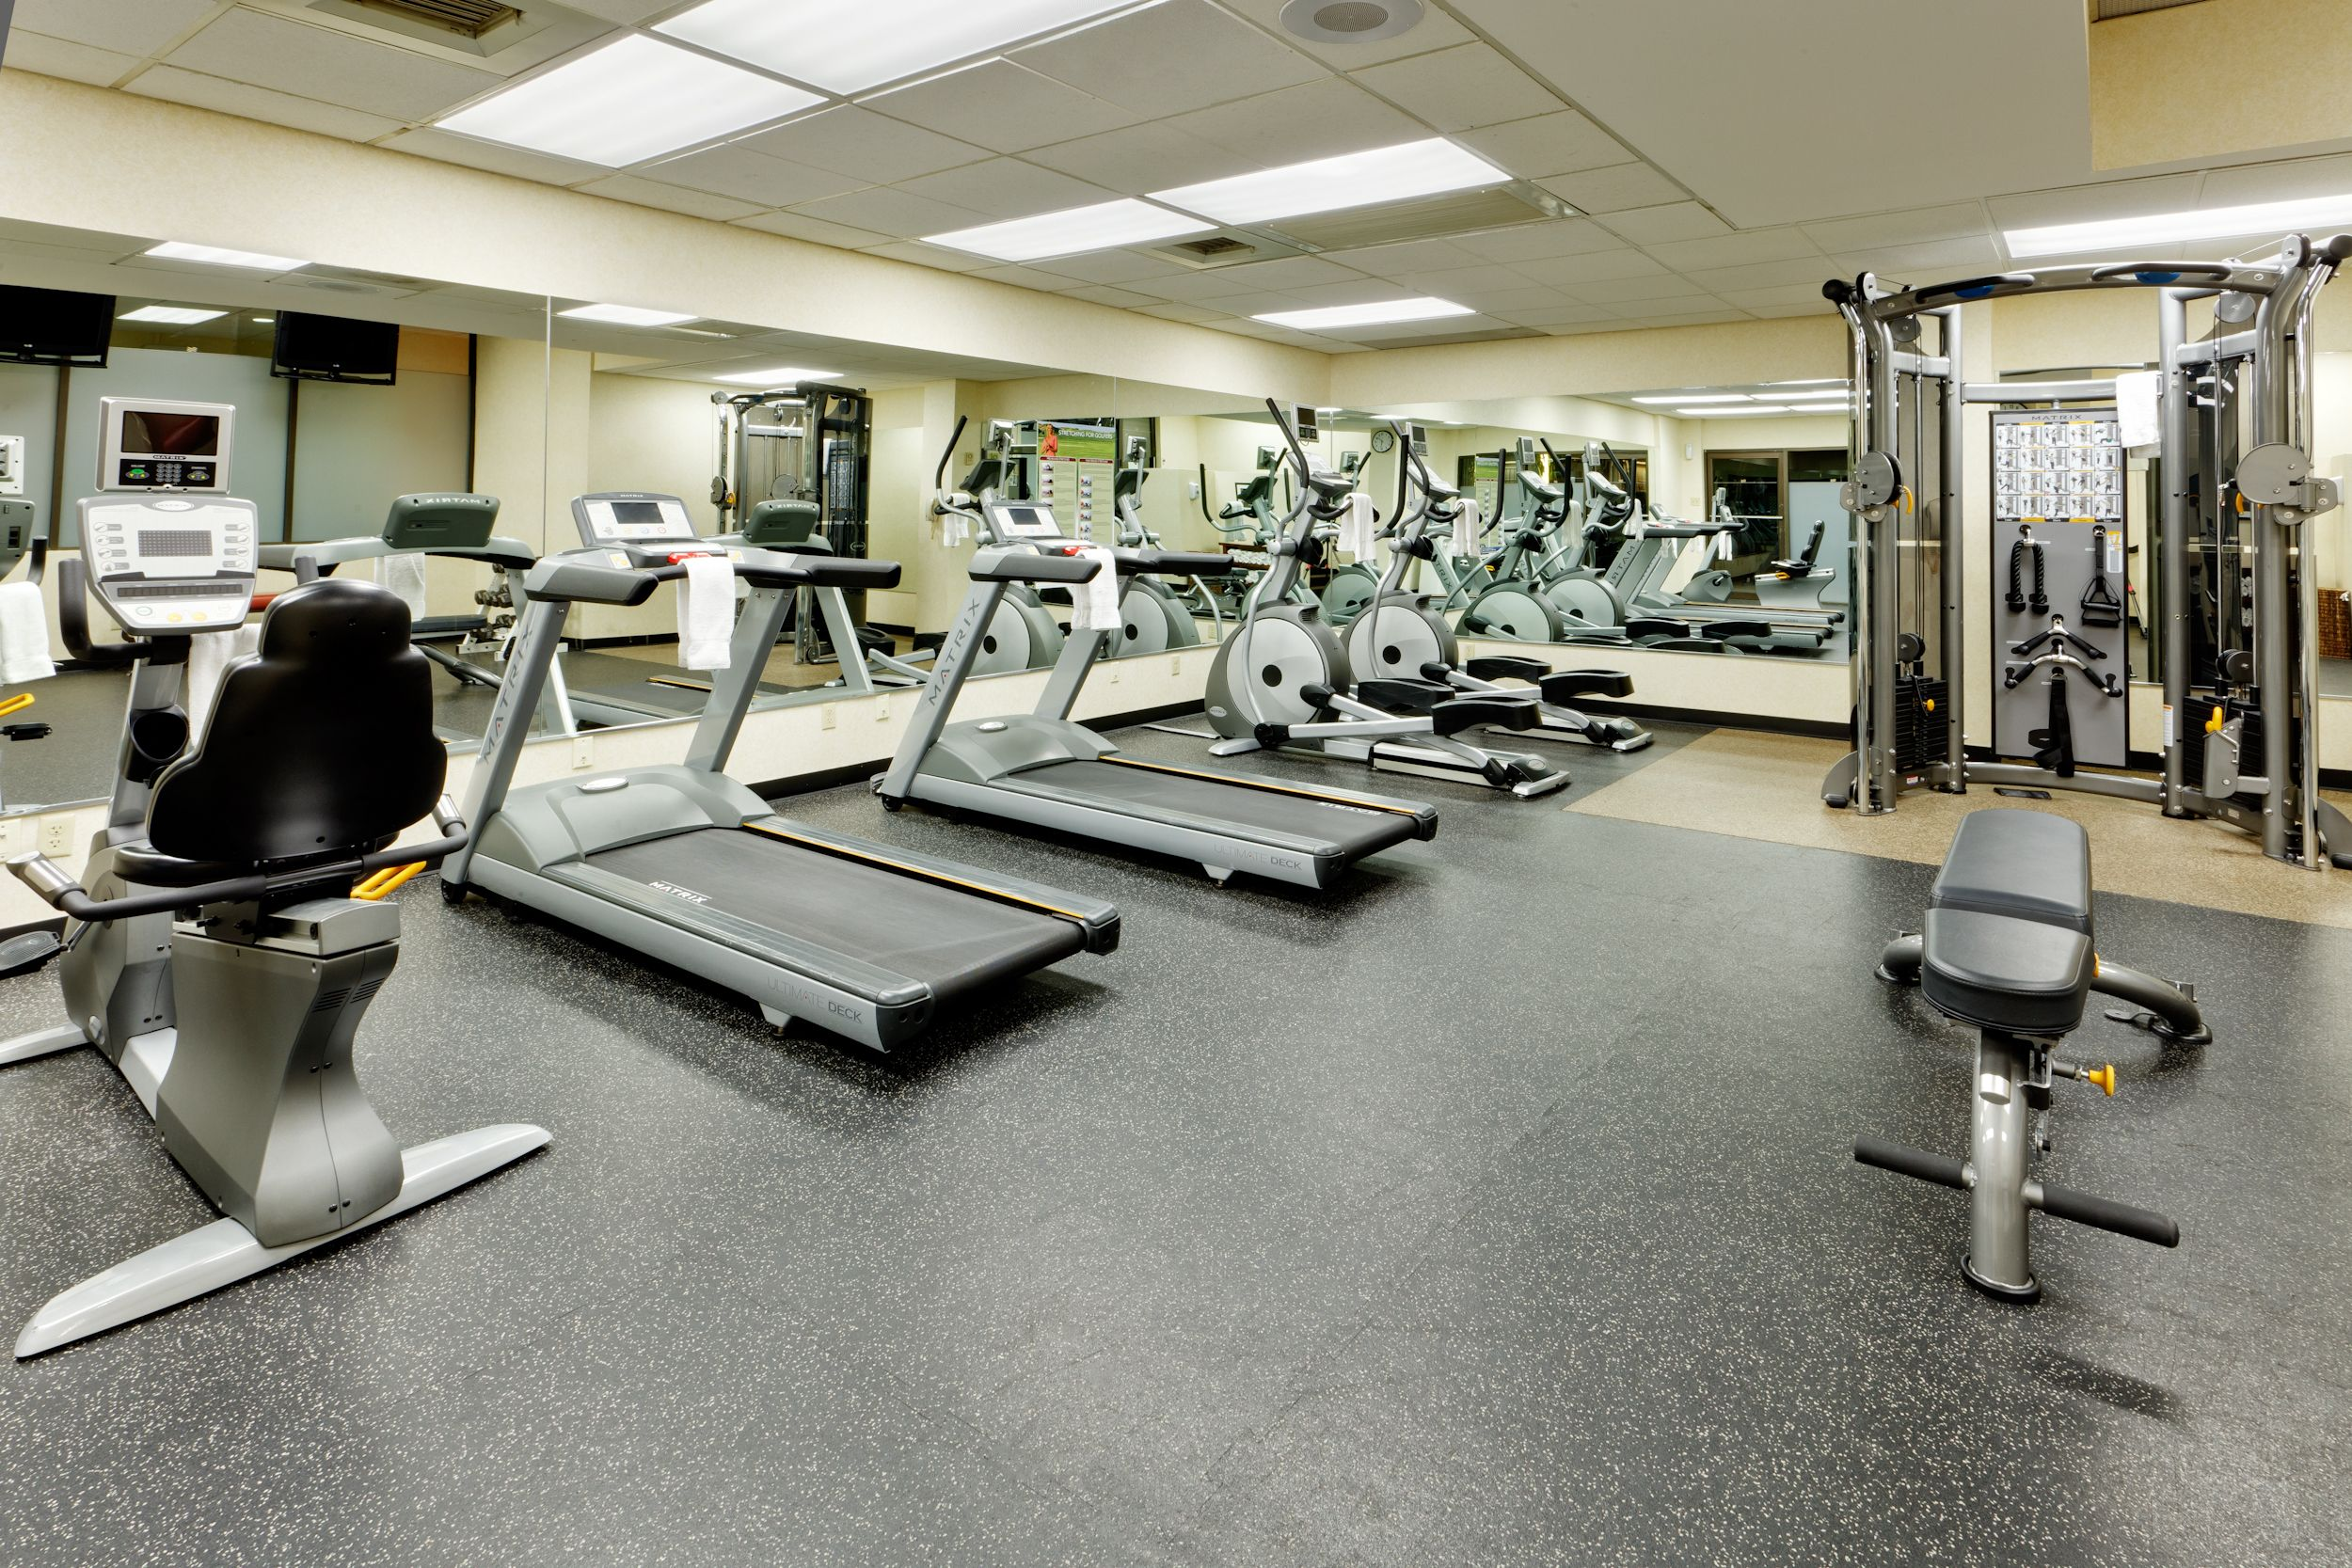 The Crowne Plaza Phoenix Features A State Of The Art Fitness Center For Your Convenience Our Fitness Center Is Open 24 Hours Technik